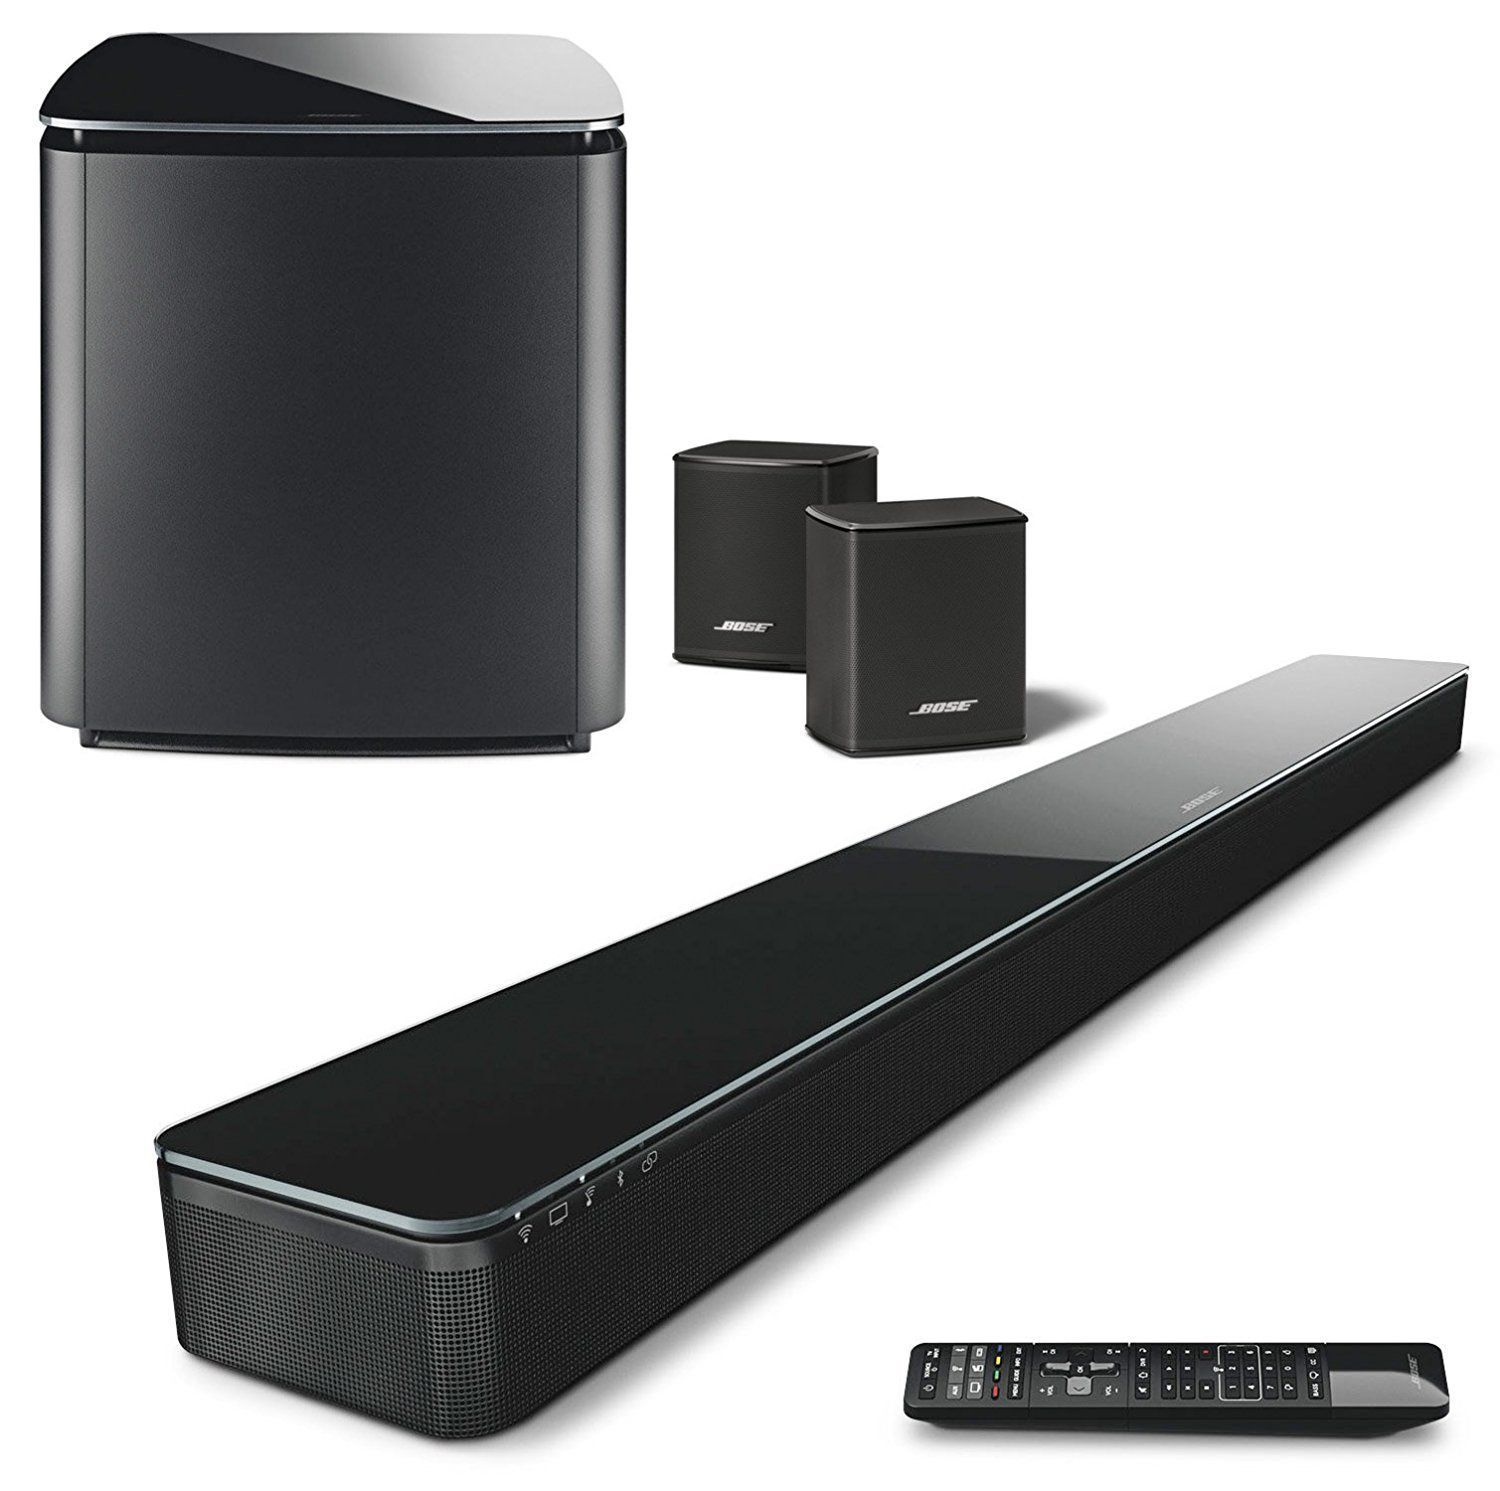 Check Out The Bose 5 1 Home Theater Soundtouch 300 Acoustimass 300 Virtually Invisible 300 Reviewed On Sound Bar Wireless Surround Sound Bose Home Theater